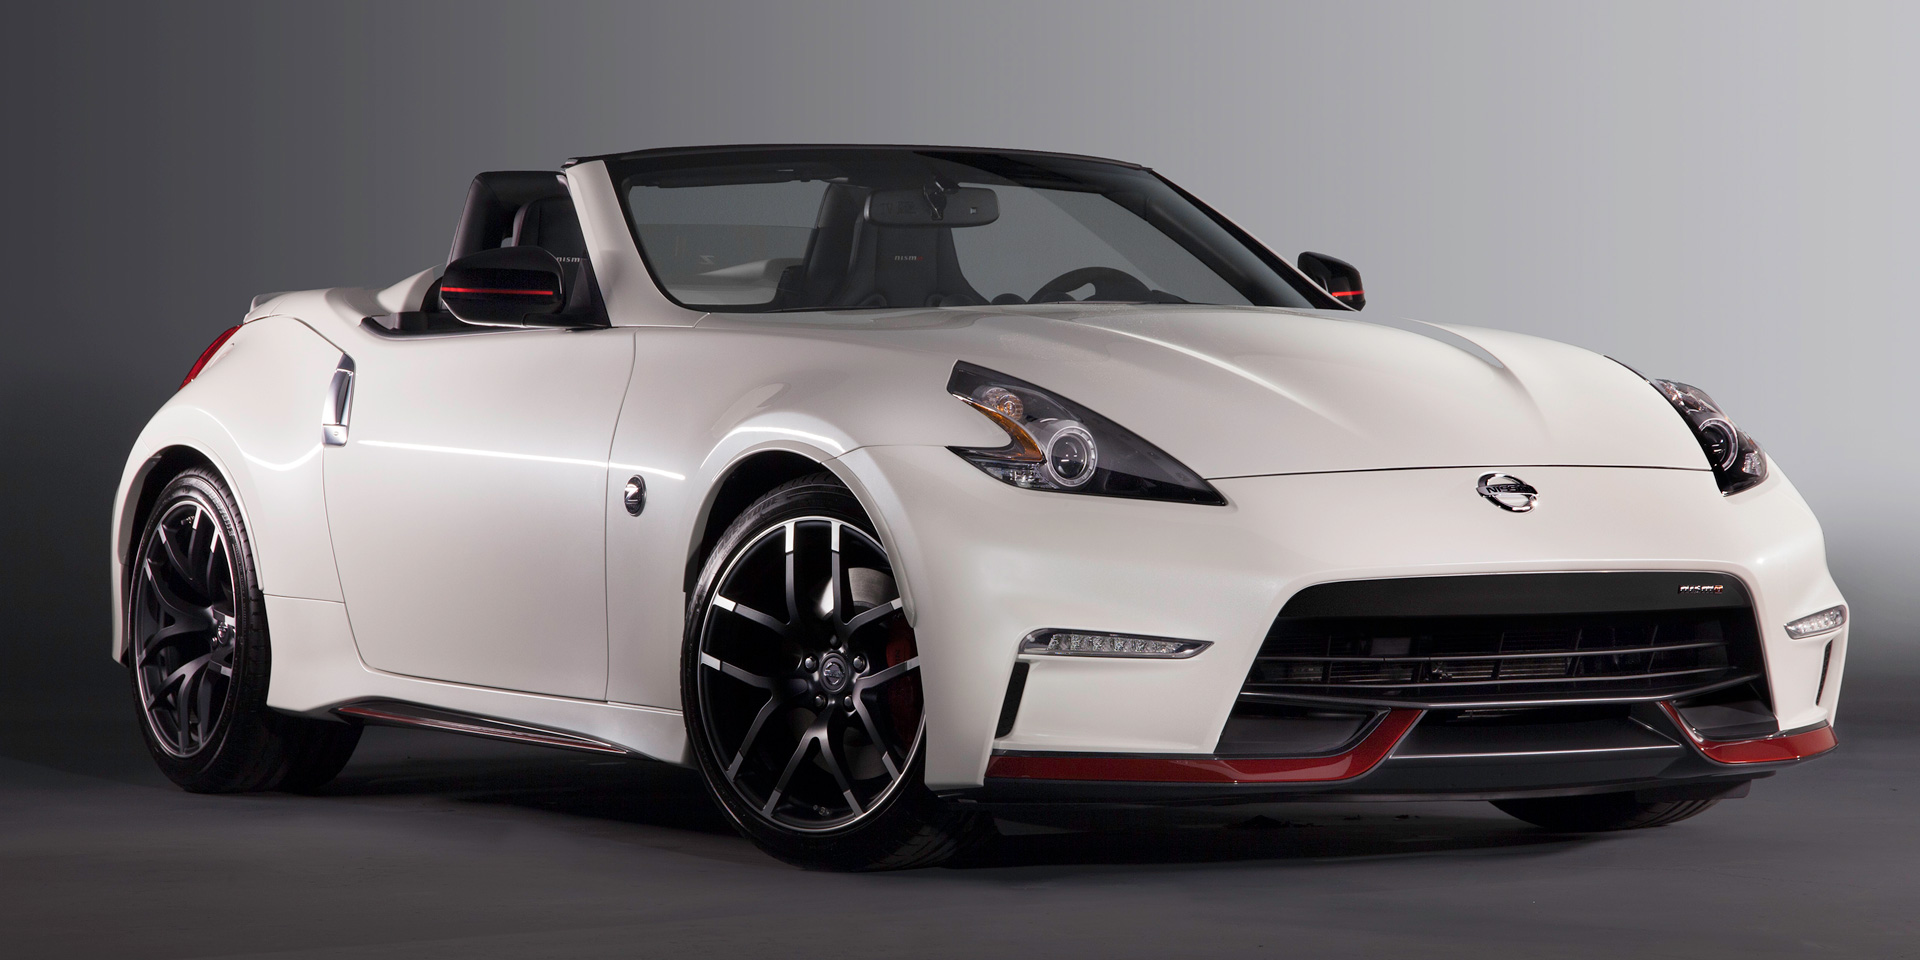 2018 nissan 370z vehicles on display chicago auto show. Black Bedroom Furniture Sets. Home Design Ideas